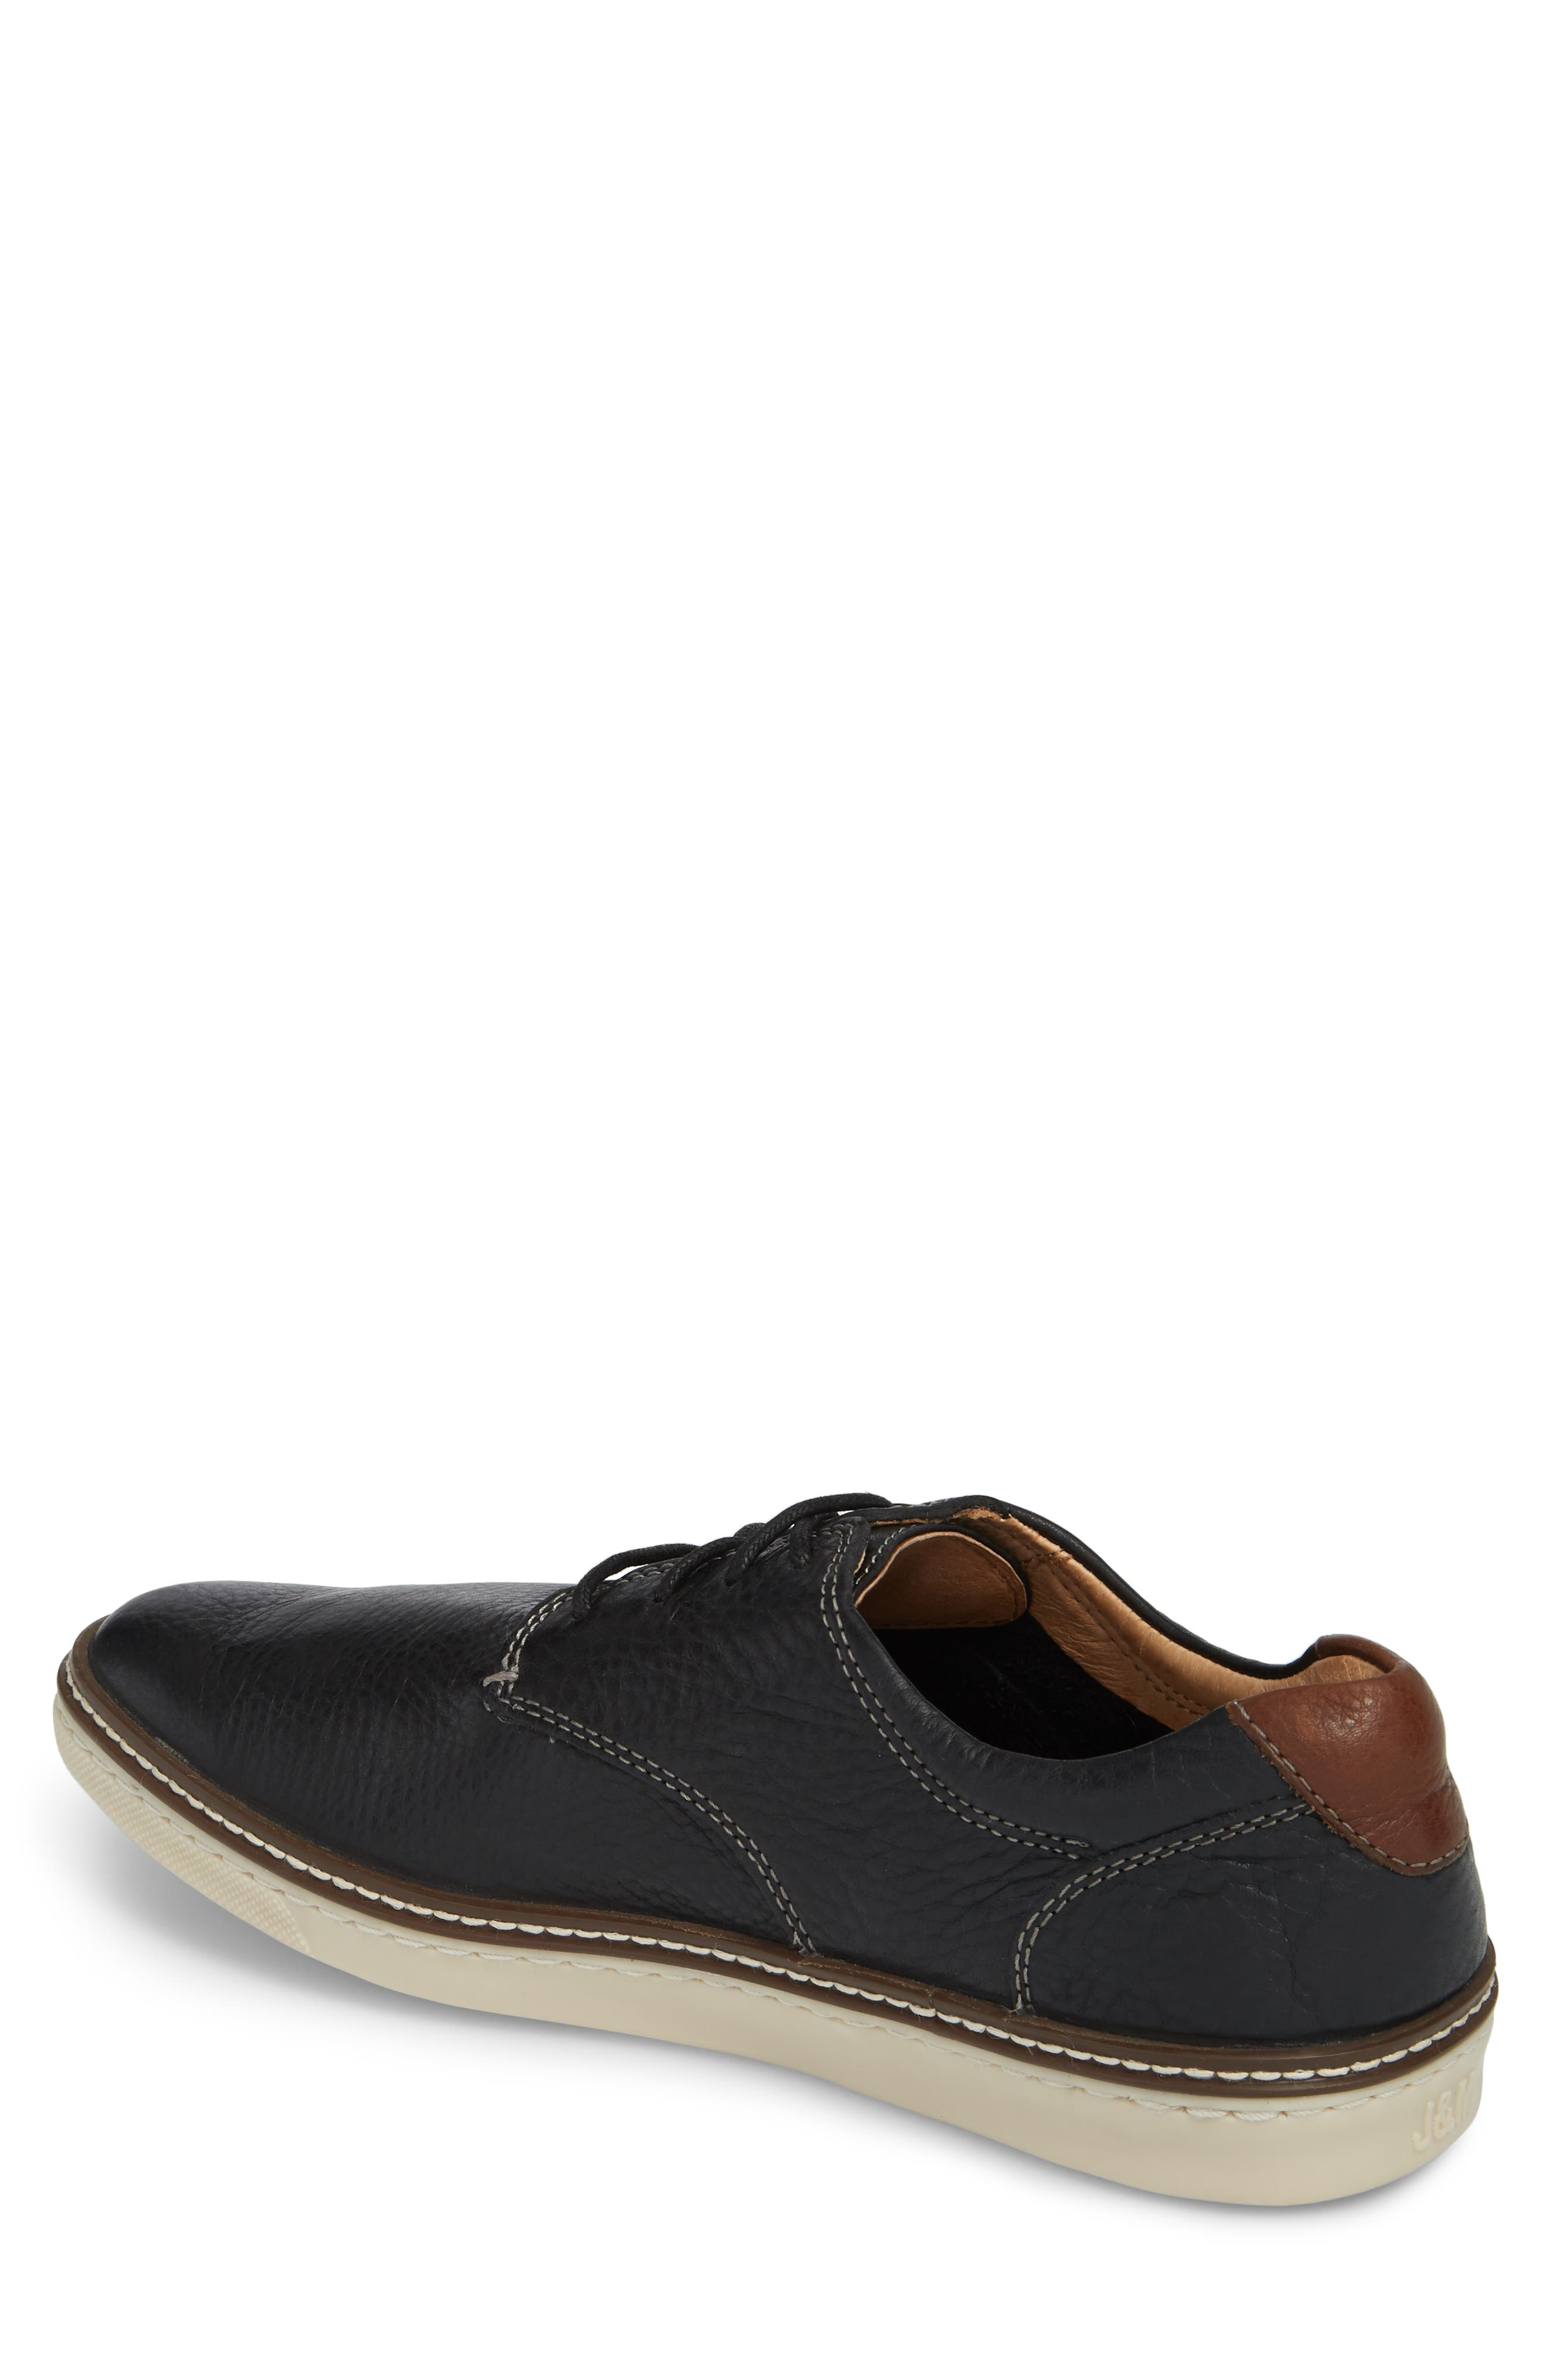 McGuffey Derby Sneaker,                             Alternate thumbnail 2, color,                             Black Leather